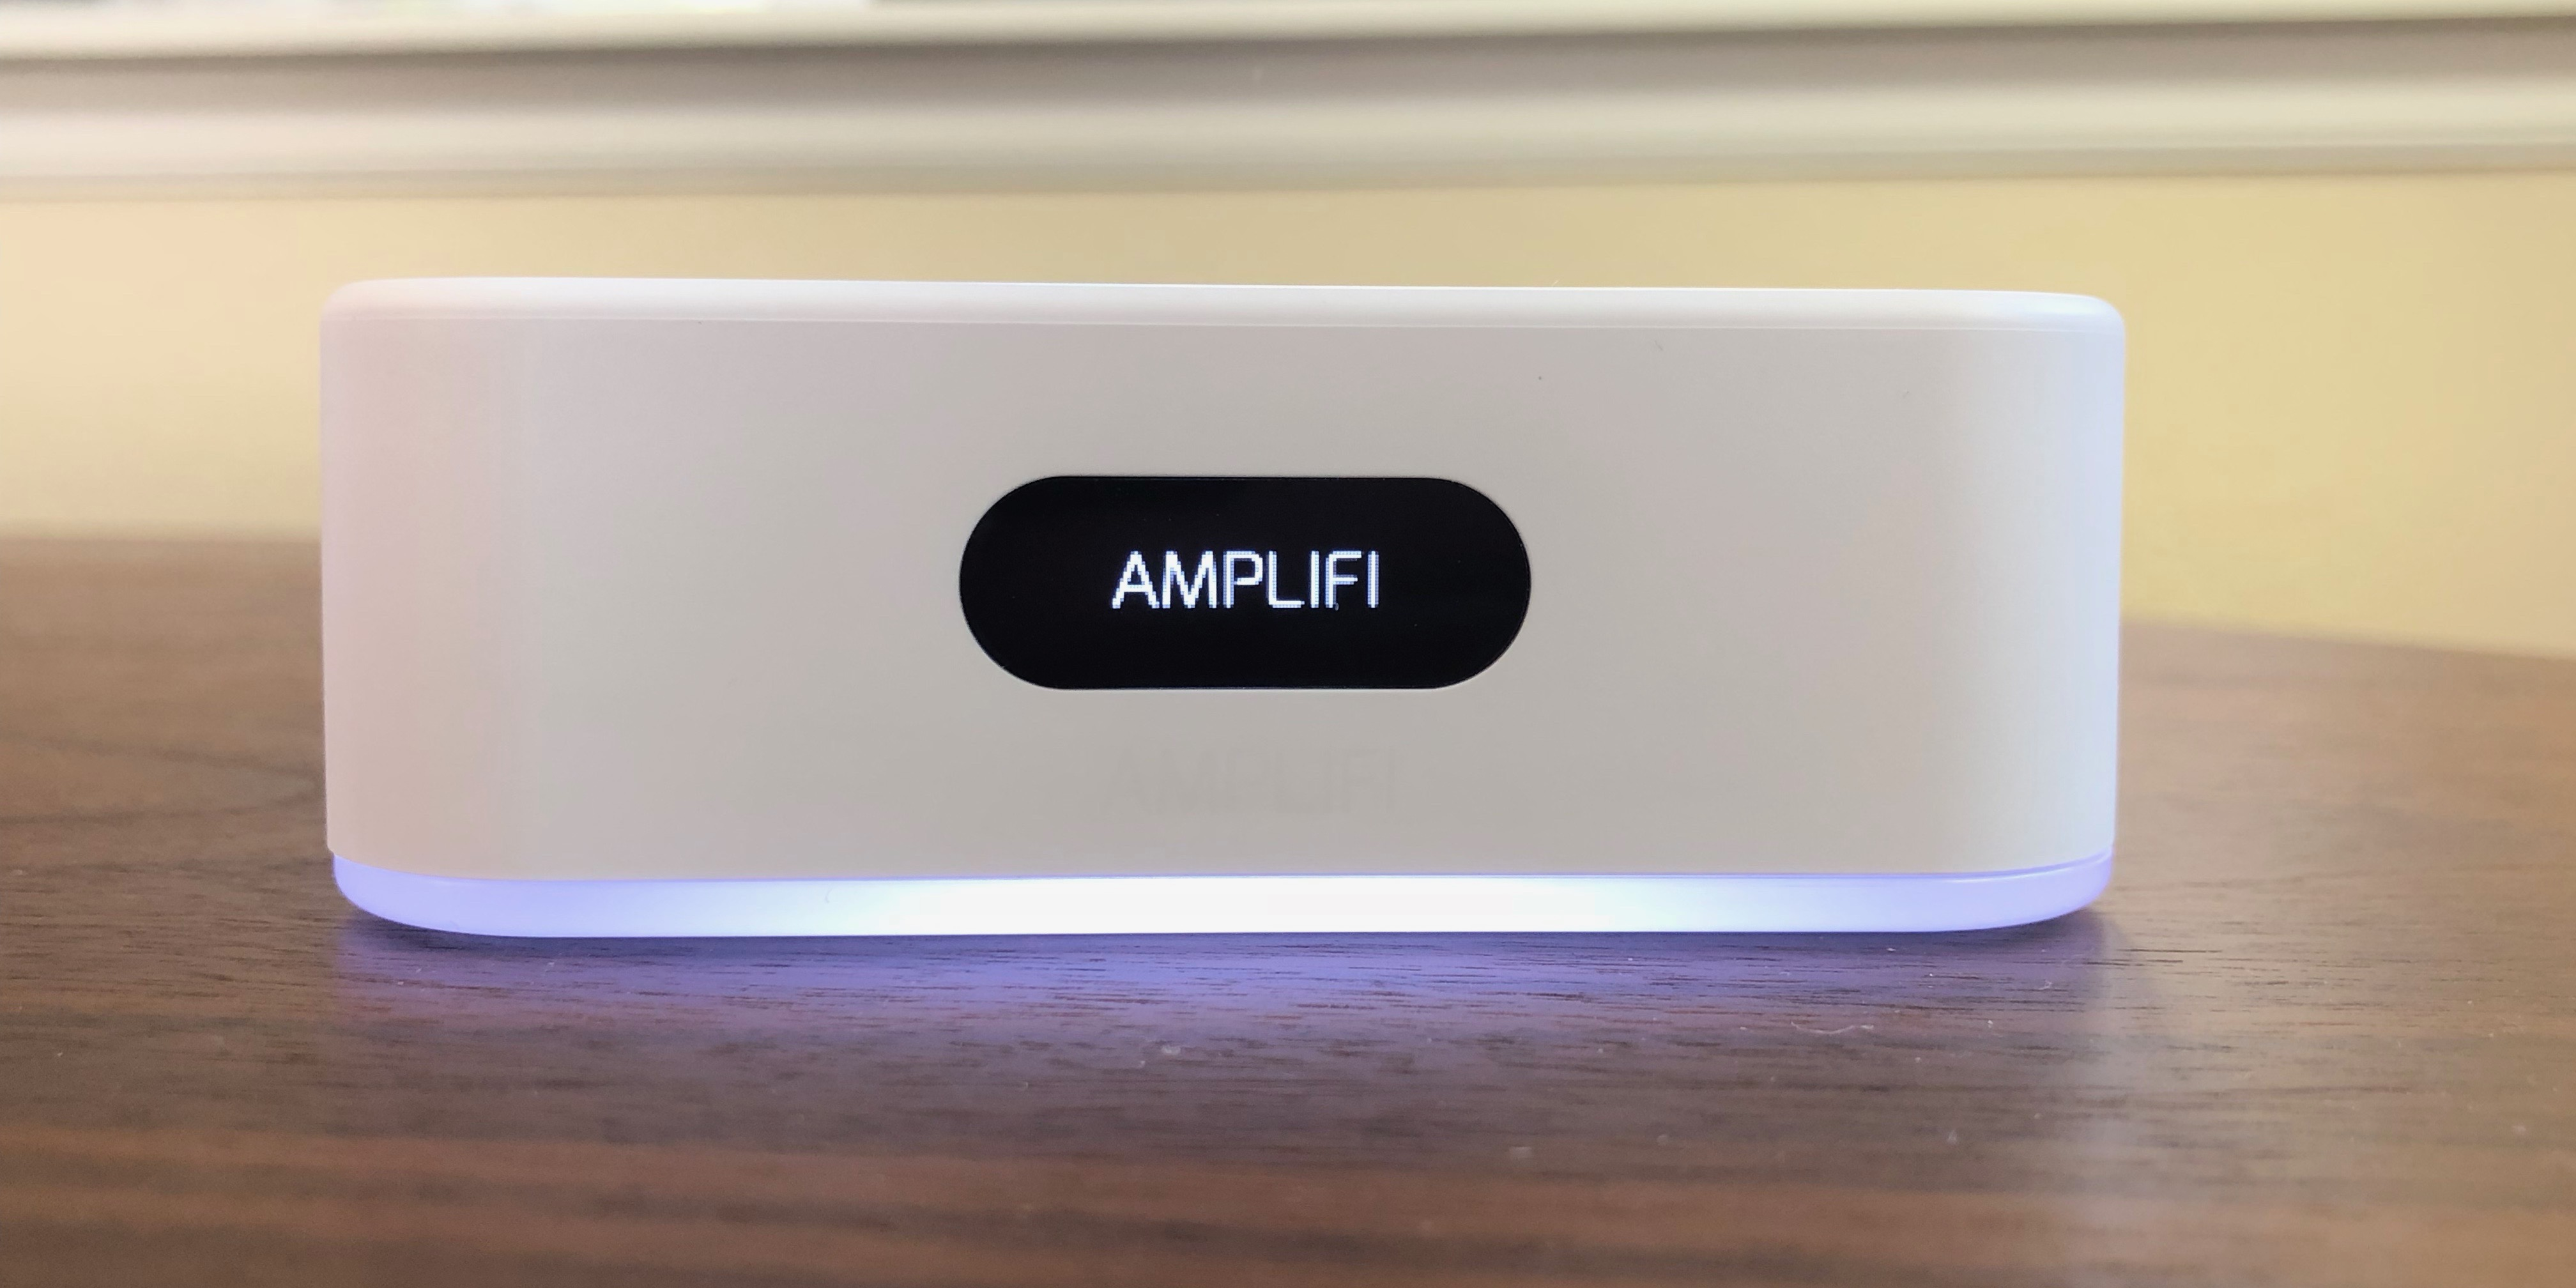 Review: AmpliFi Instant mesh WiFi system is a quality